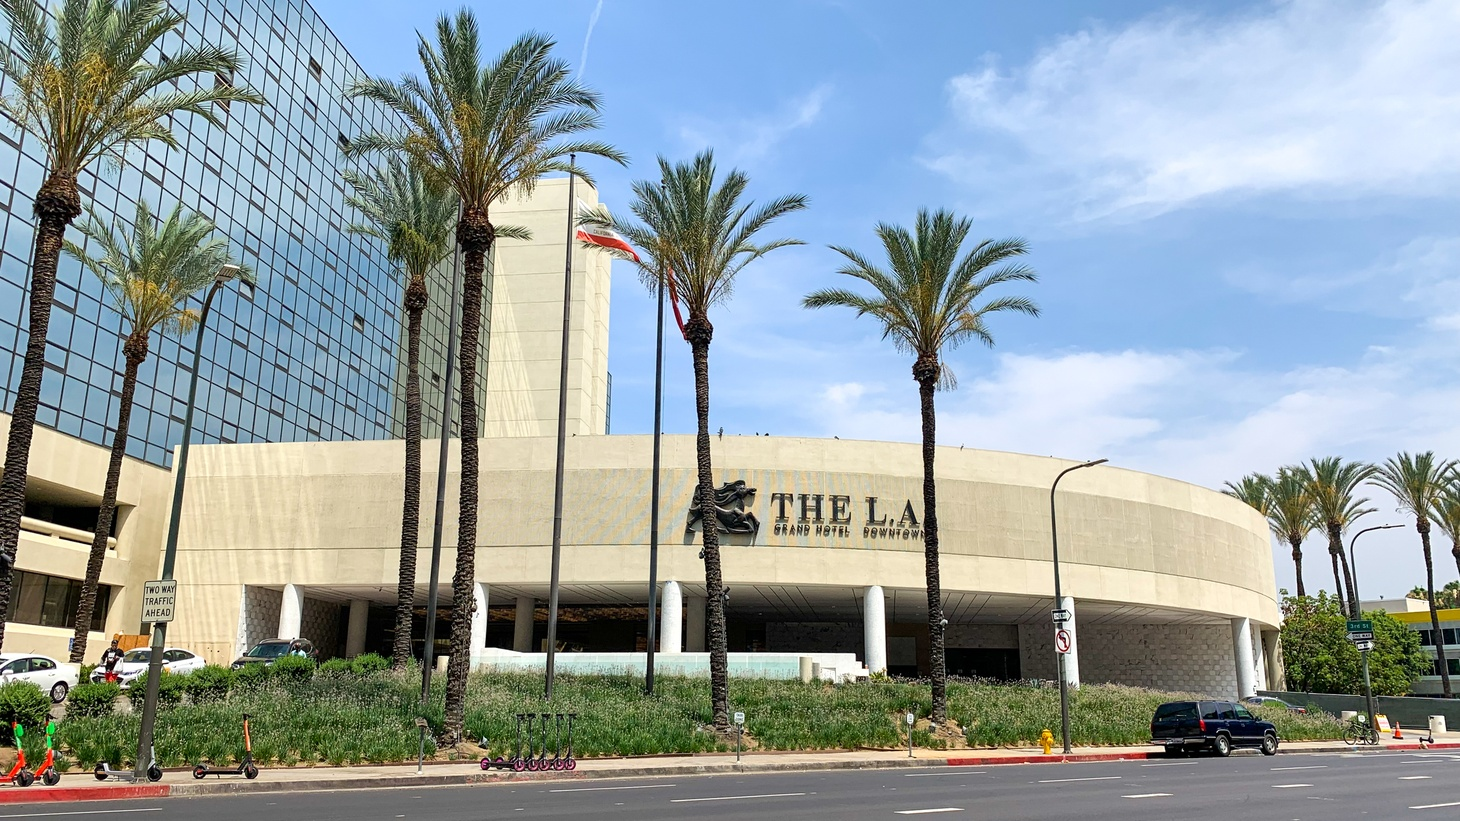 The LA Grand Hotel Downtown is the largest Project Roomkey site in the state sheltering nearly 500 unhoused people.